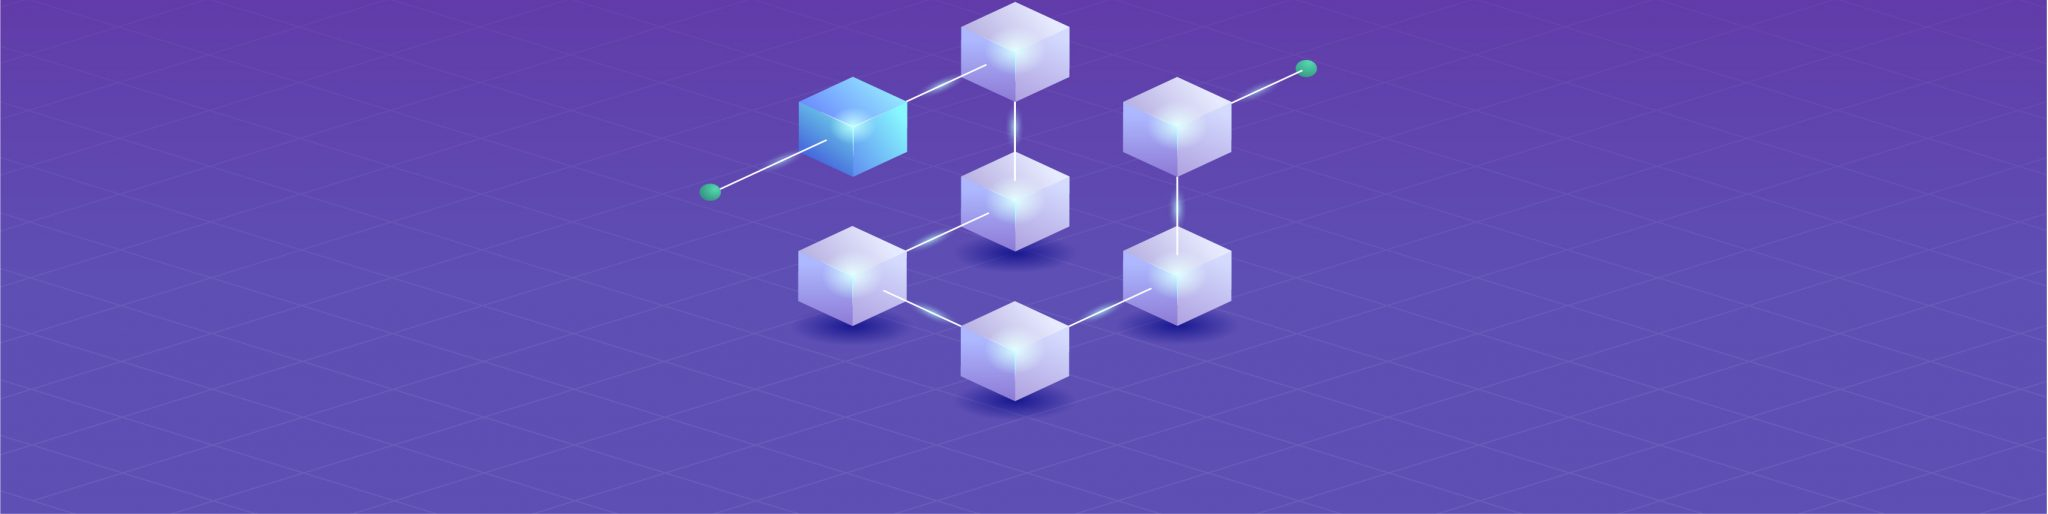 Aws Blockchain Templates Introduced For Configuring Resources